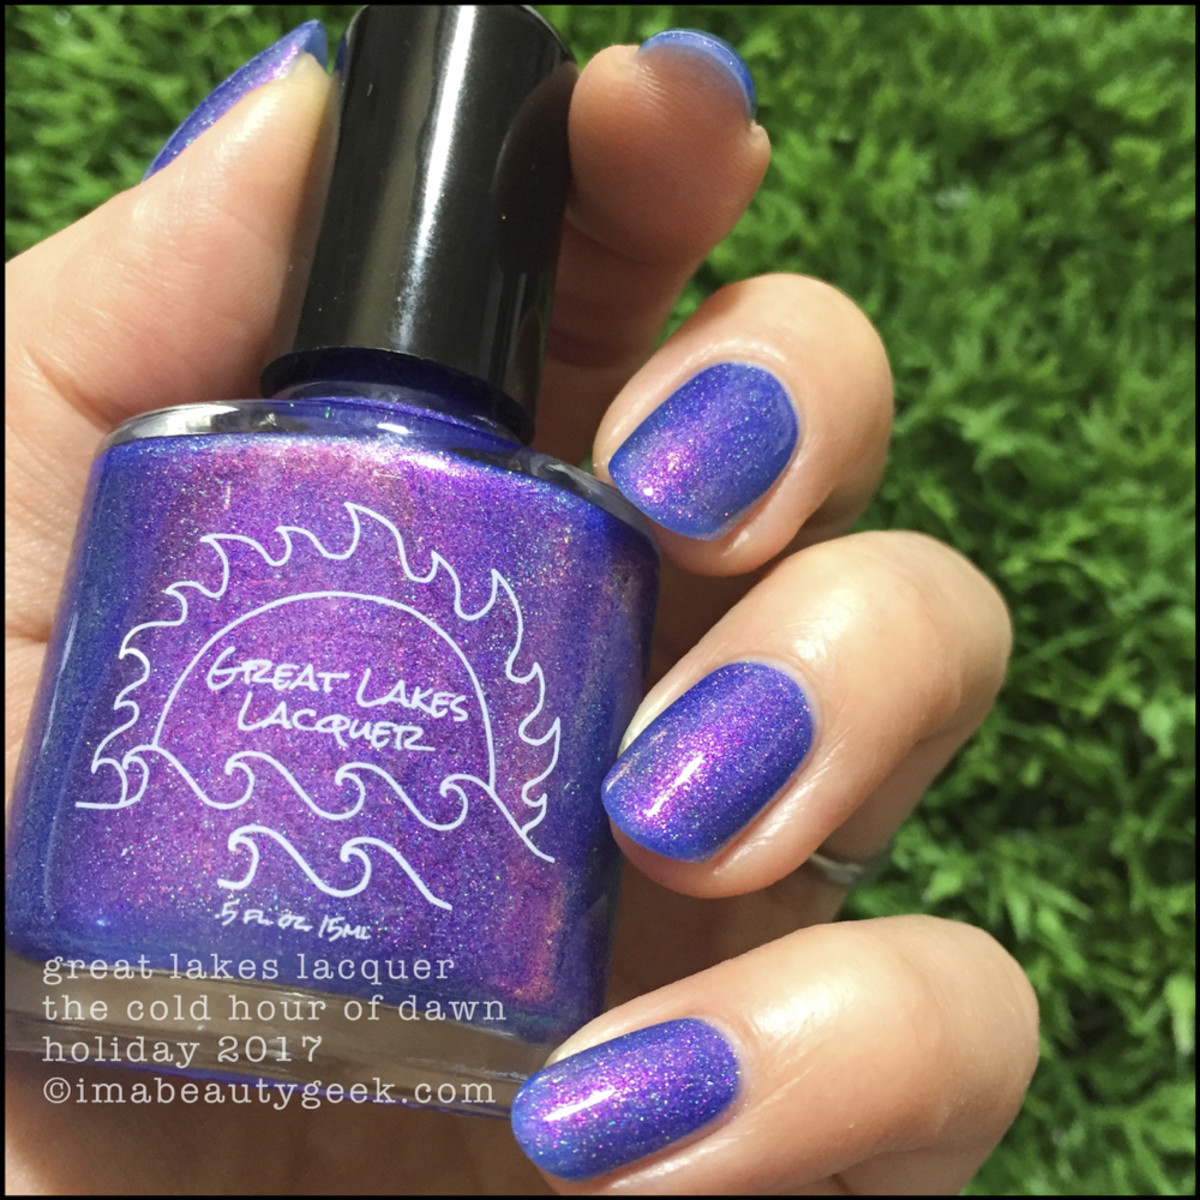 Great Lakes Lacquer The Cold Hour of Dawn 2 _ Great Lakes Lacquer Holiday 2017